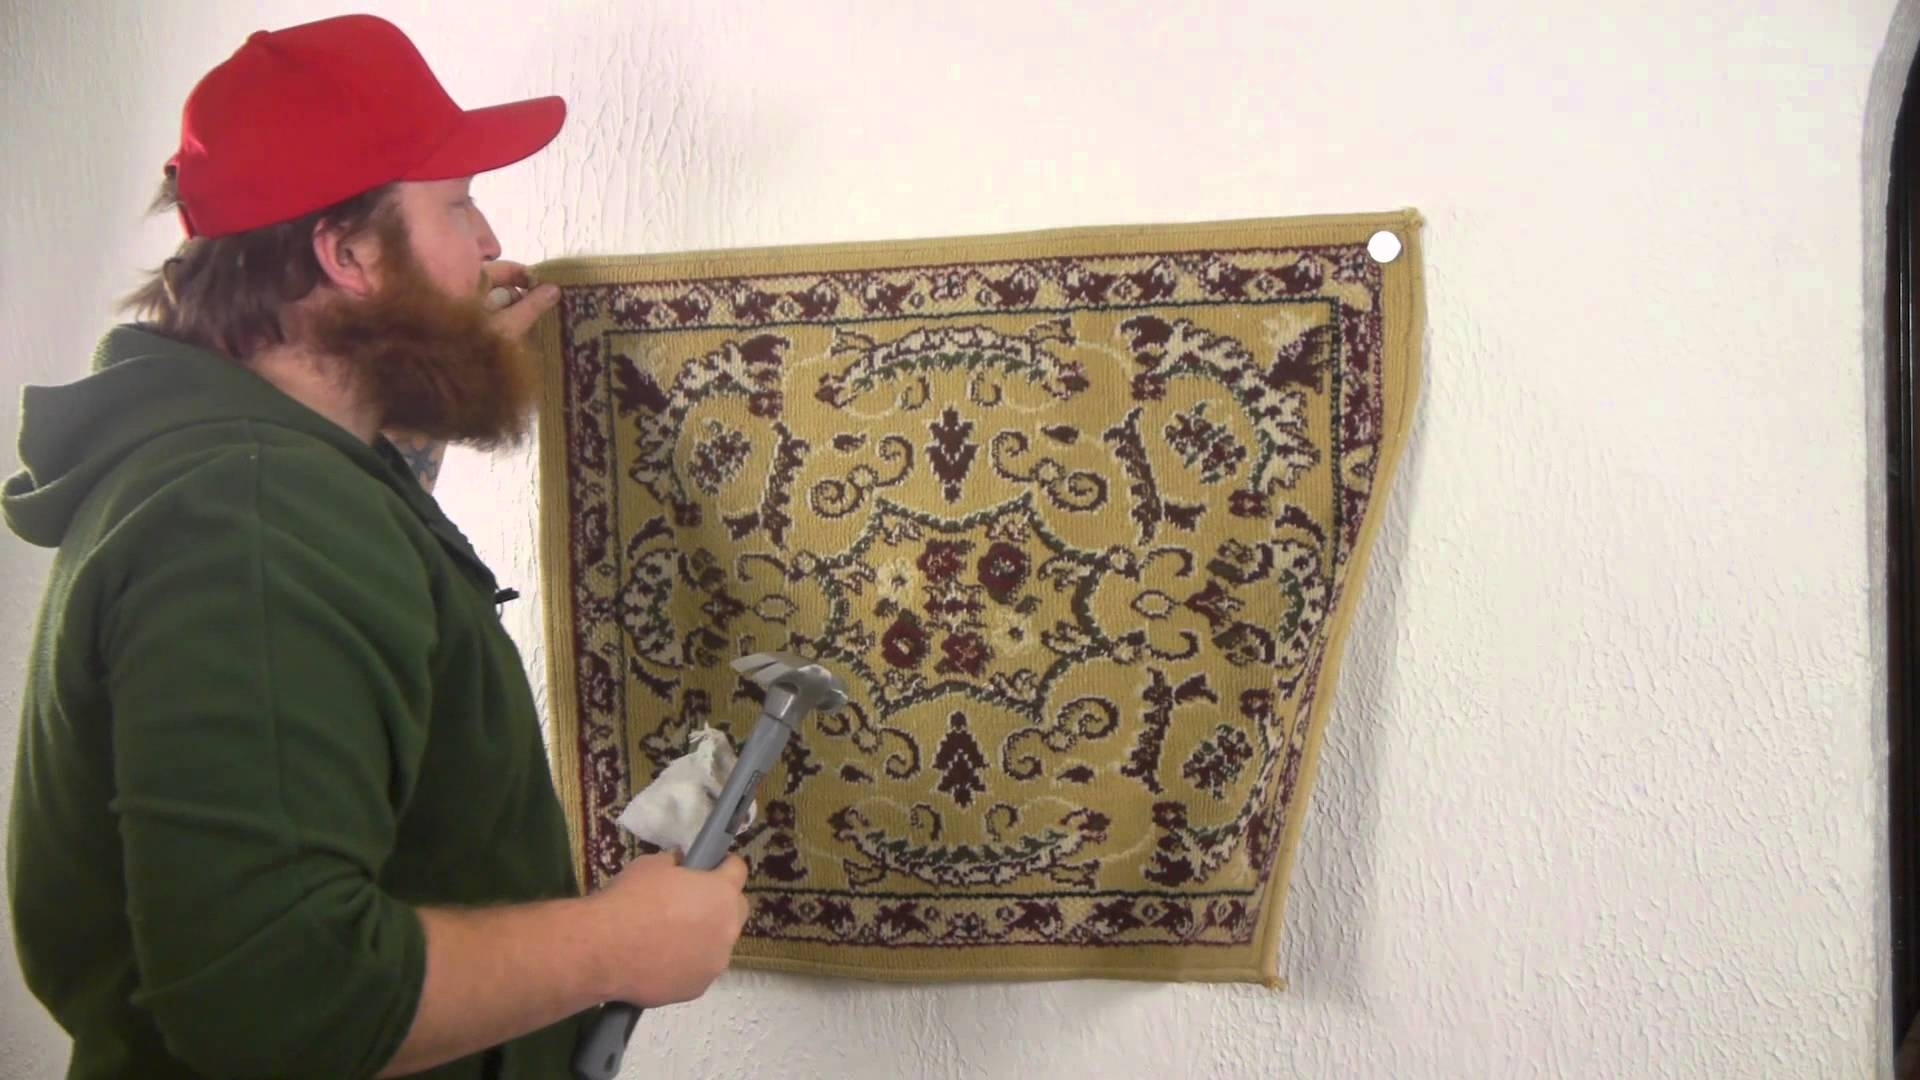 How To Attach Fabric To A Wall : Nails, Screws & Wall Hangings Inside 2017 Cloth Fabric Wall Art (View 11 of 15)